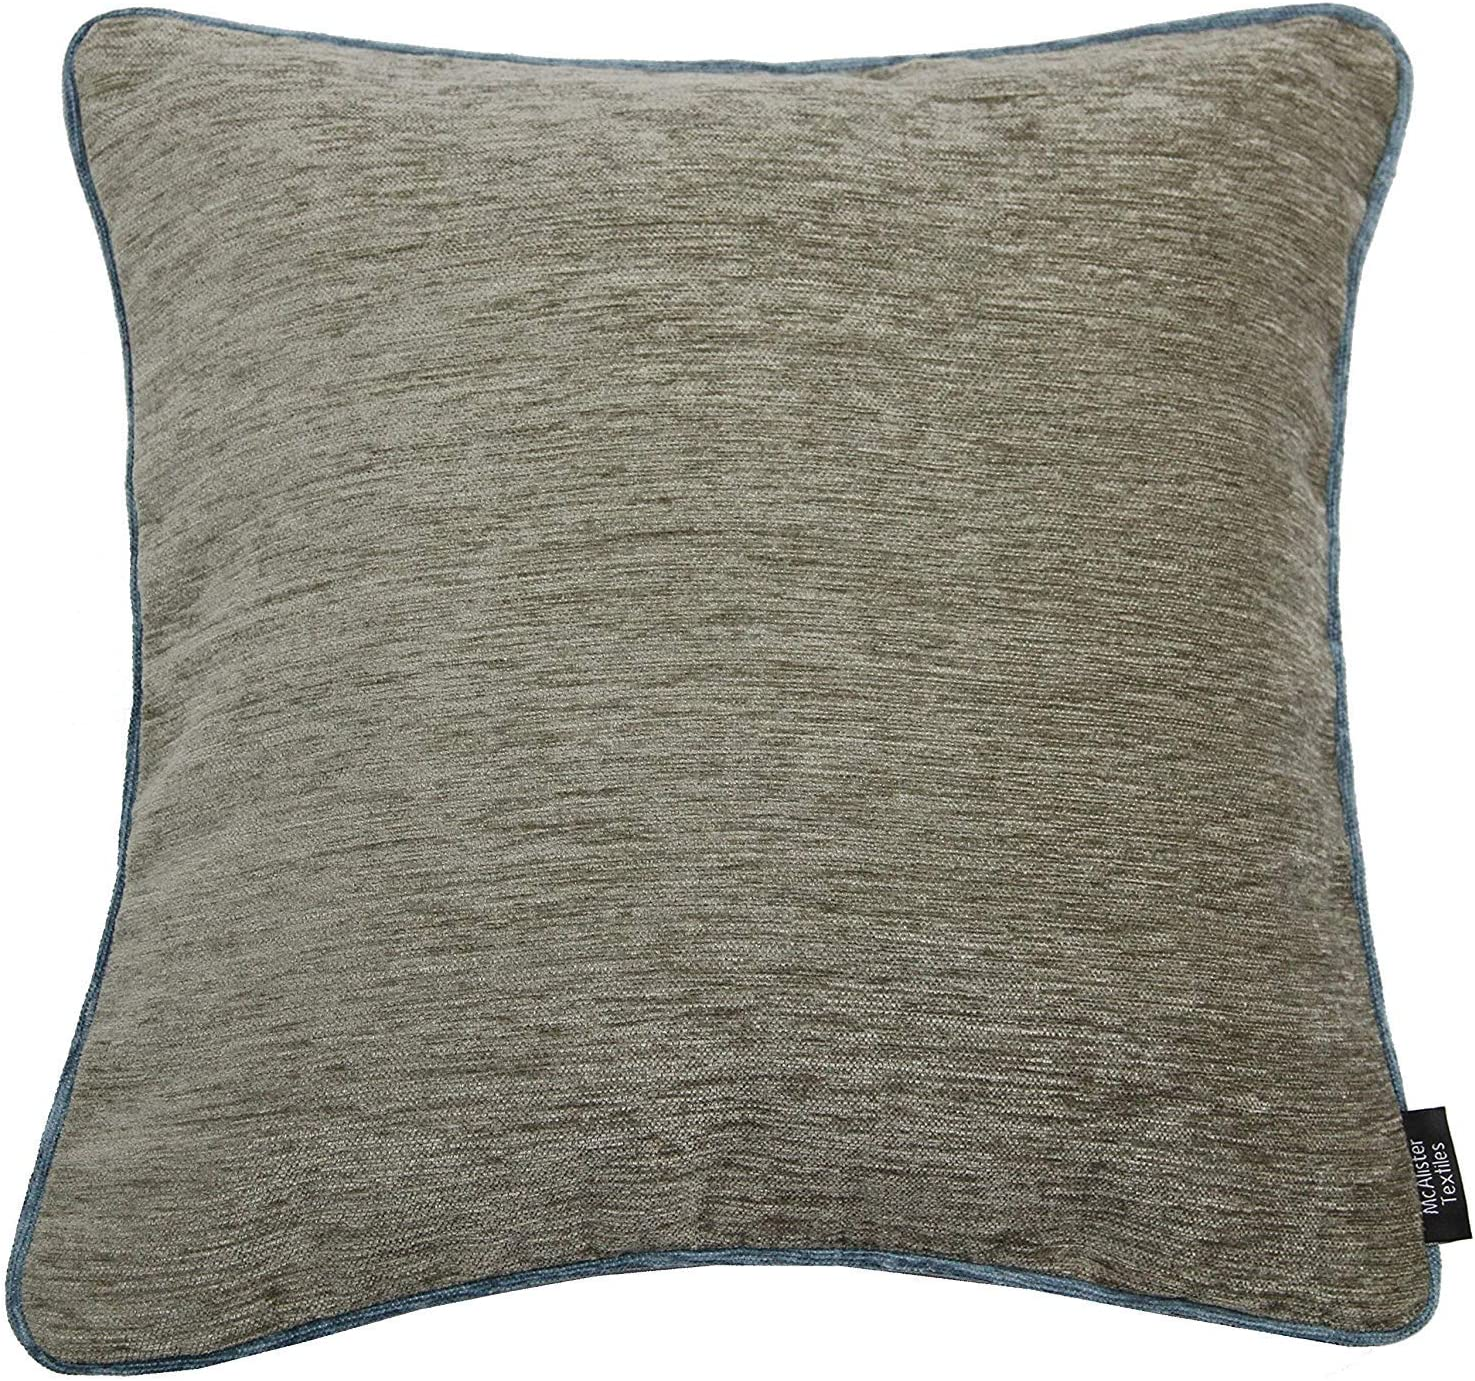 McAlister Textiles Pillow Case Alston Chenille Decorative Cushion Cover for Sofa 40x40cm Plain Two Tone Color Lilac Blue and Taupe Sofa